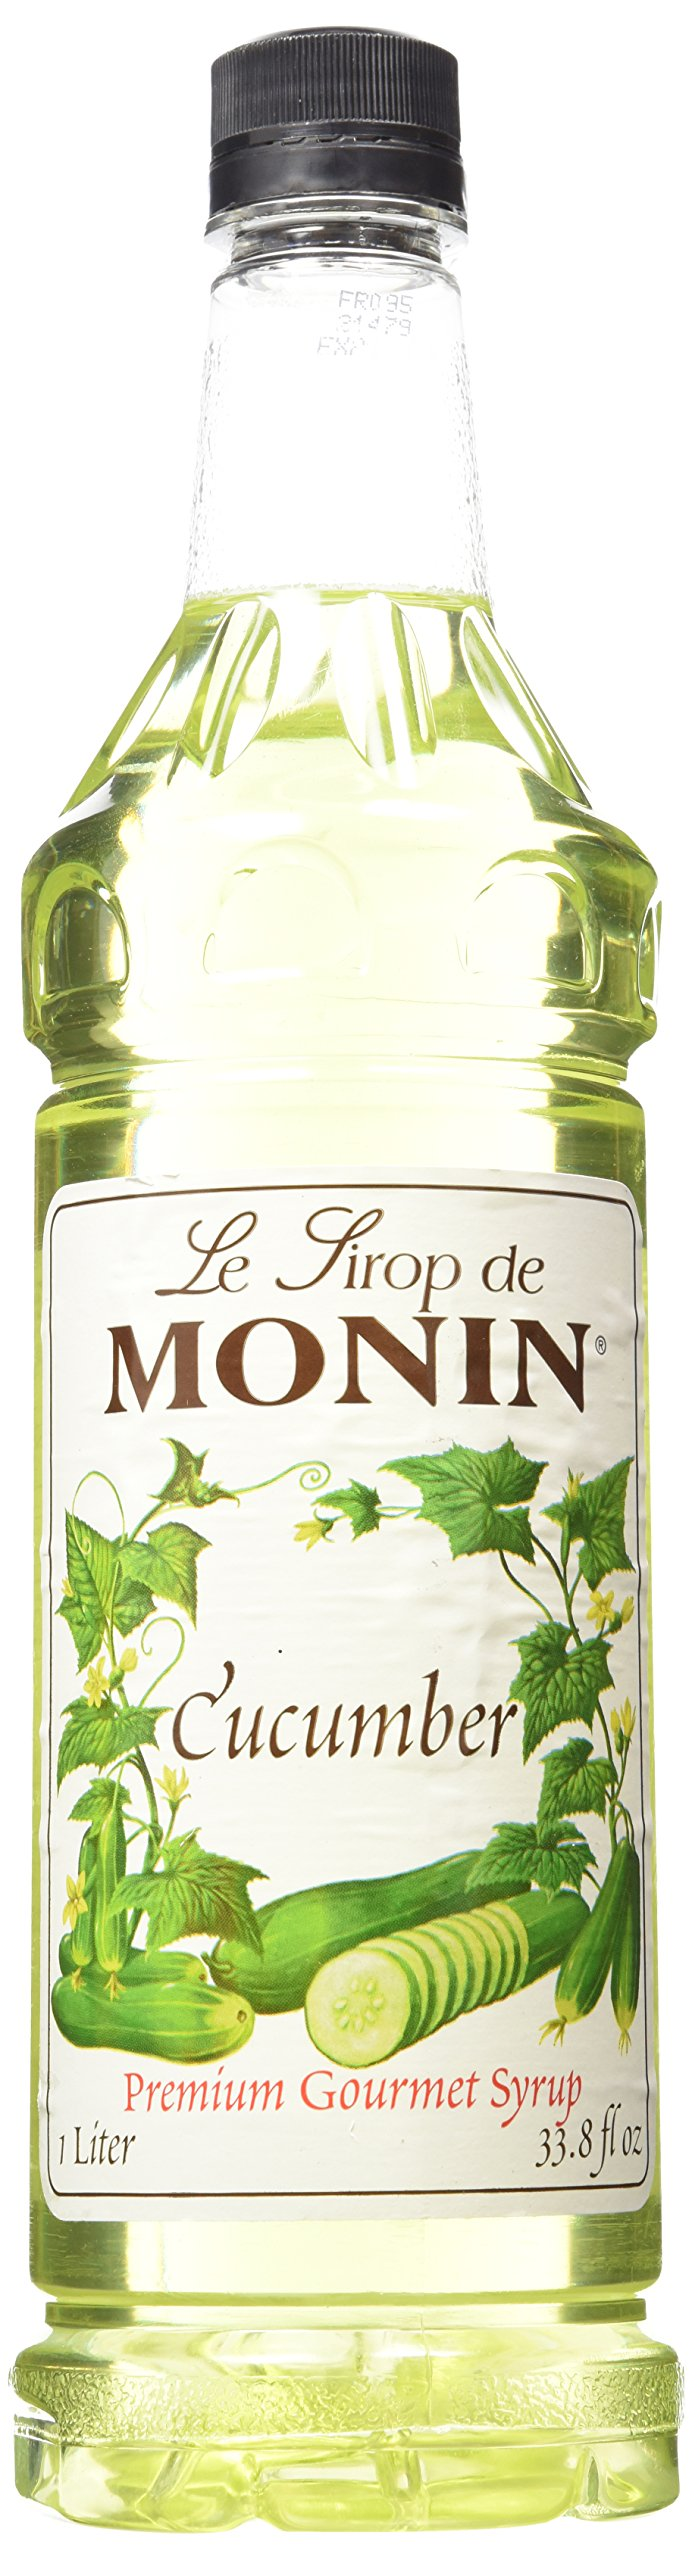 Monin Flavored Syrup,Cucumber, 33.8-Ounce Plastic Bottle (1 Liter)